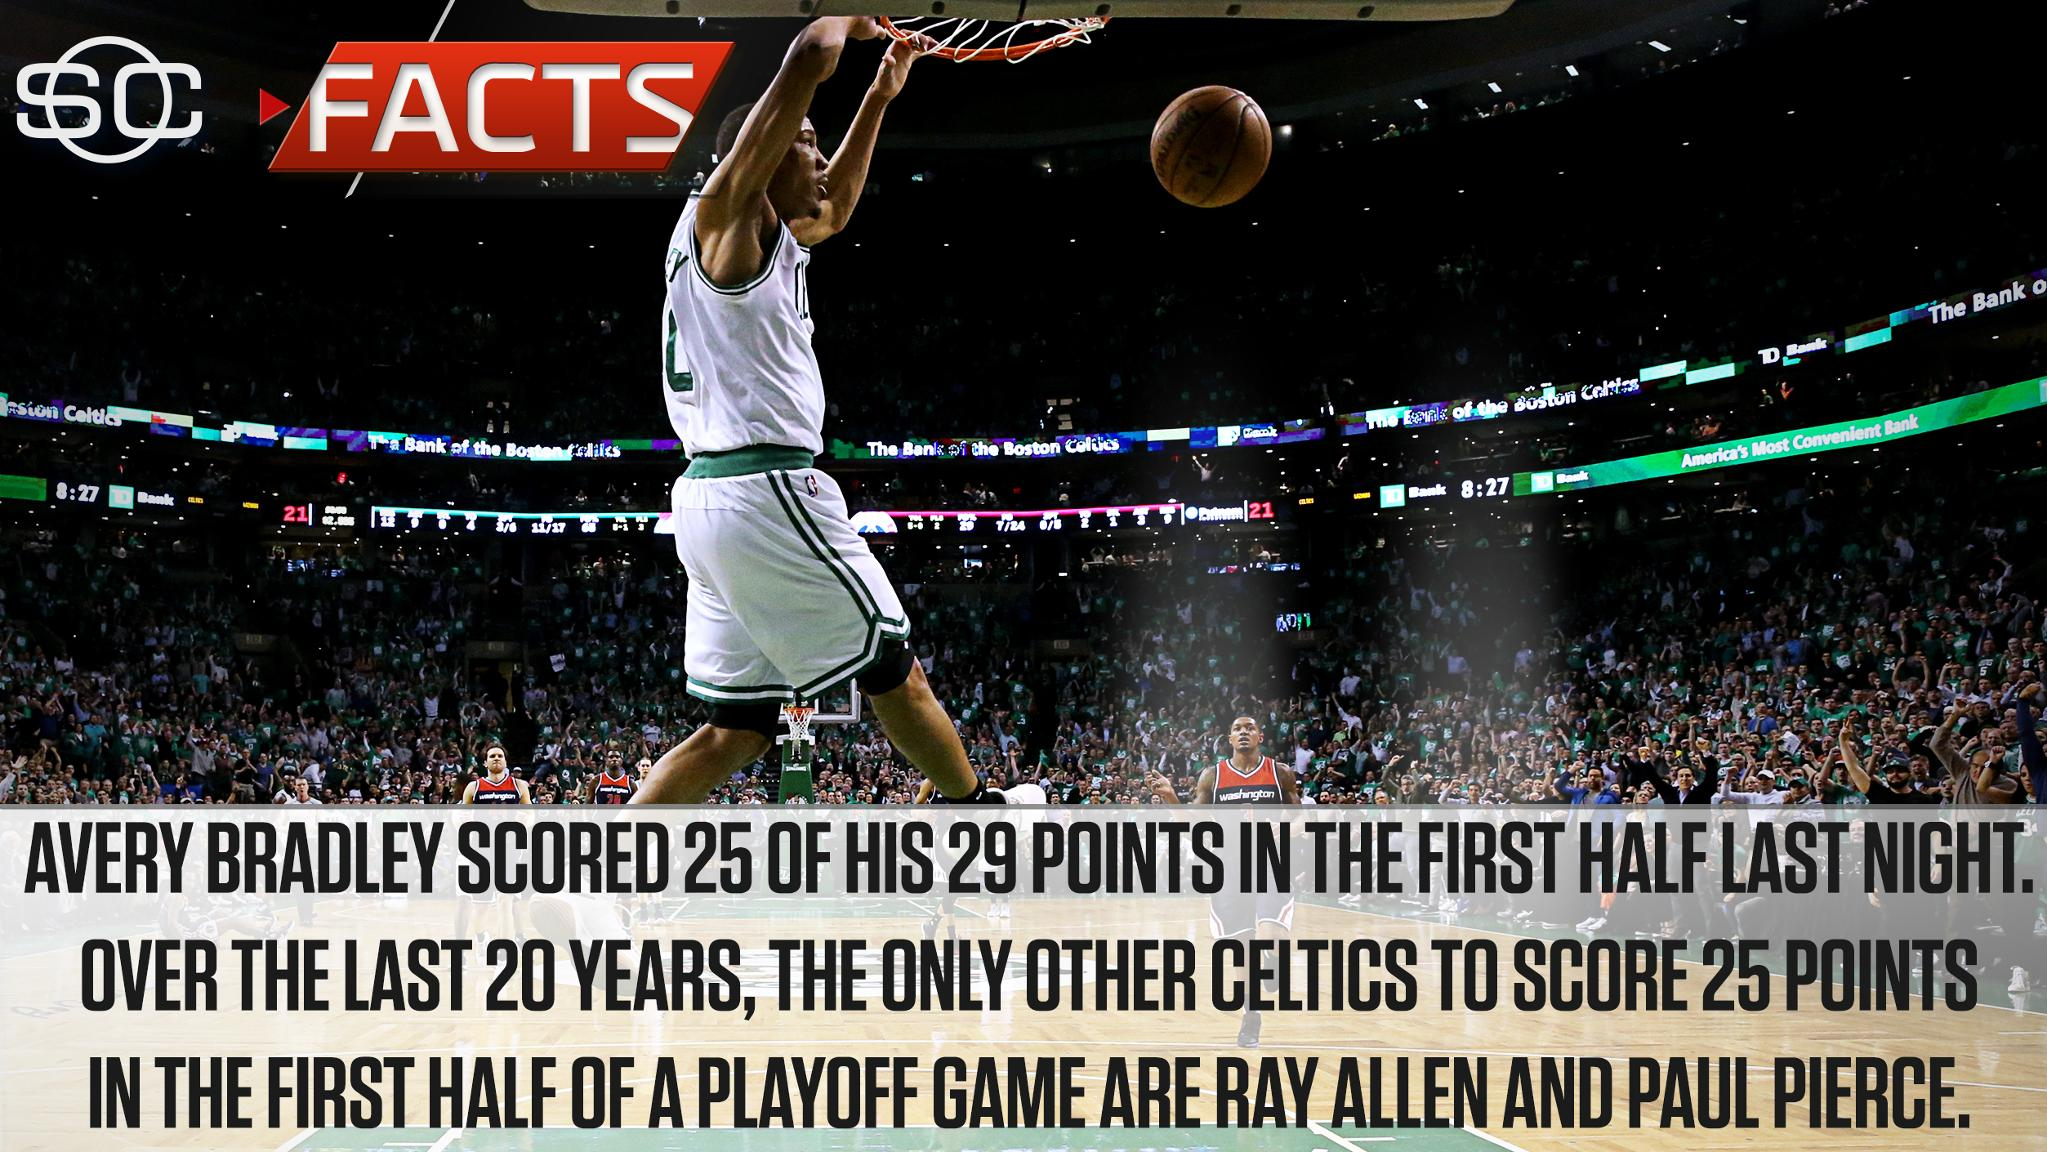 Avery Bradley was on another level last night. #SCFacts https://t.co/LWOA3V1lhq